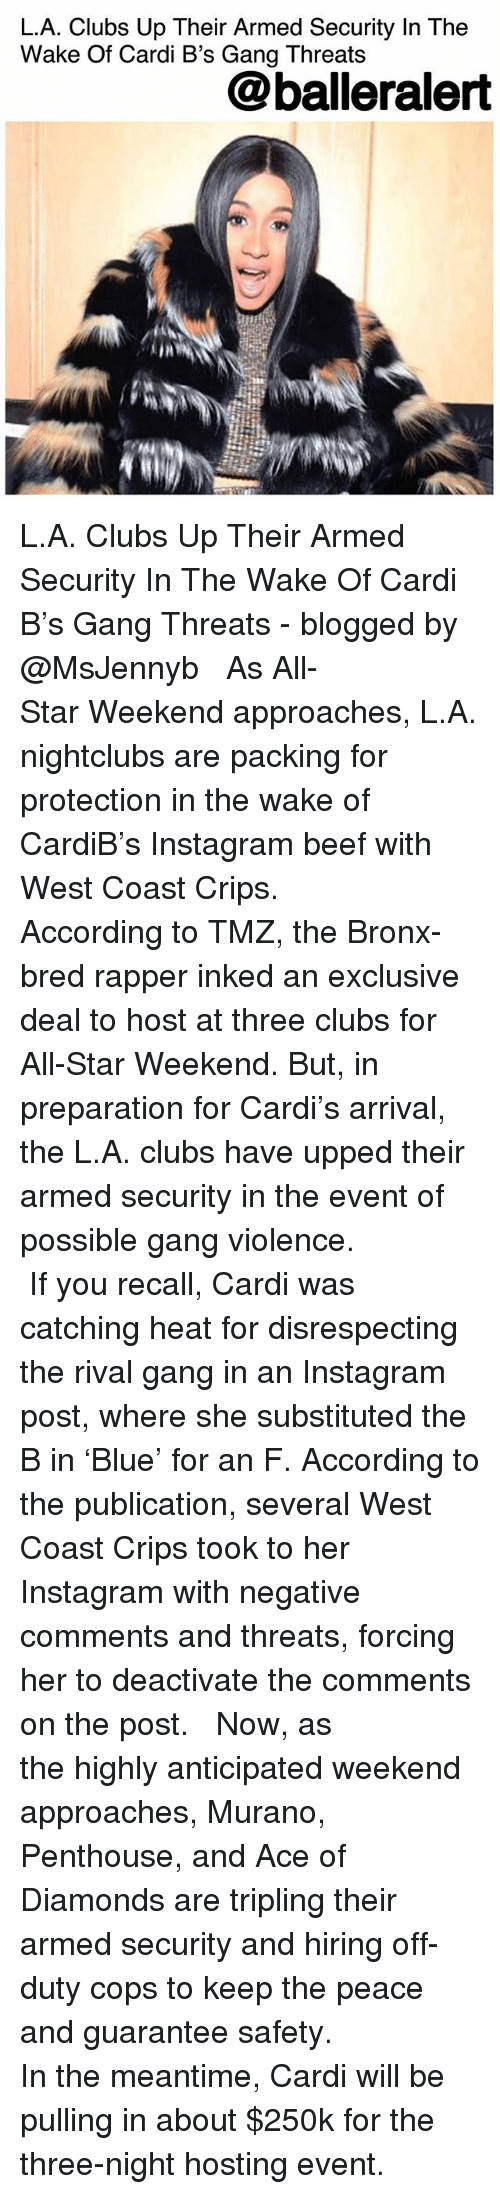 All Star, Beef, and Crips: L.A. Clubs Up Their Armed Security In The  Wake Of Cardi B's Gang Threats  @balleralert  IN L.A. Clubs Up Their Armed Security In The Wake Of Cardi B's Gang Threats - blogged by @MsJennyb ⠀⠀⠀⠀⠀⠀⠀ ⠀⠀⠀⠀⠀⠀⠀ As All-Star Weekend approaches, L.A. nightclubs are packing for protection in the wake of CardiB's Instagram beef with West Coast Crips. ⠀⠀⠀⠀⠀⠀⠀ ⠀⠀⠀⠀⠀⠀⠀ According to TMZ, the Bronx-bred rapper inked an exclusive deal to host at three clubs for All-Star Weekend. But, in preparation for Cardi's arrival, the L.A. clubs have upped their armed security in the event of possible gang violence. ⠀⠀⠀⠀⠀⠀⠀ ⠀⠀⠀⠀⠀⠀⠀ If you recall, Cardi was catching heat for disrespecting the rival gang in an Instagram post, where she substituted the B in 'Blue' for an F. According to the publication, several West Coast Crips took to her Instagram with negative comments and threats, forcing her to deactivate the comments on the post. ⠀⠀⠀⠀⠀⠀⠀ ⠀⠀⠀⠀⠀⠀⠀ Now, as the highly anticipated weekend approaches, Murano, Penthouse, and Ace of Diamonds are tripling their armed security and hiring off-duty cops to keep the peace and guarantee safety. ⠀⠀⠀⠀⠀⠀⠀ ⠀⠀⠀⠀⠀⠀⠀ In the meantime, Cardi will be pulling in about $250k for the three-night hosting event.